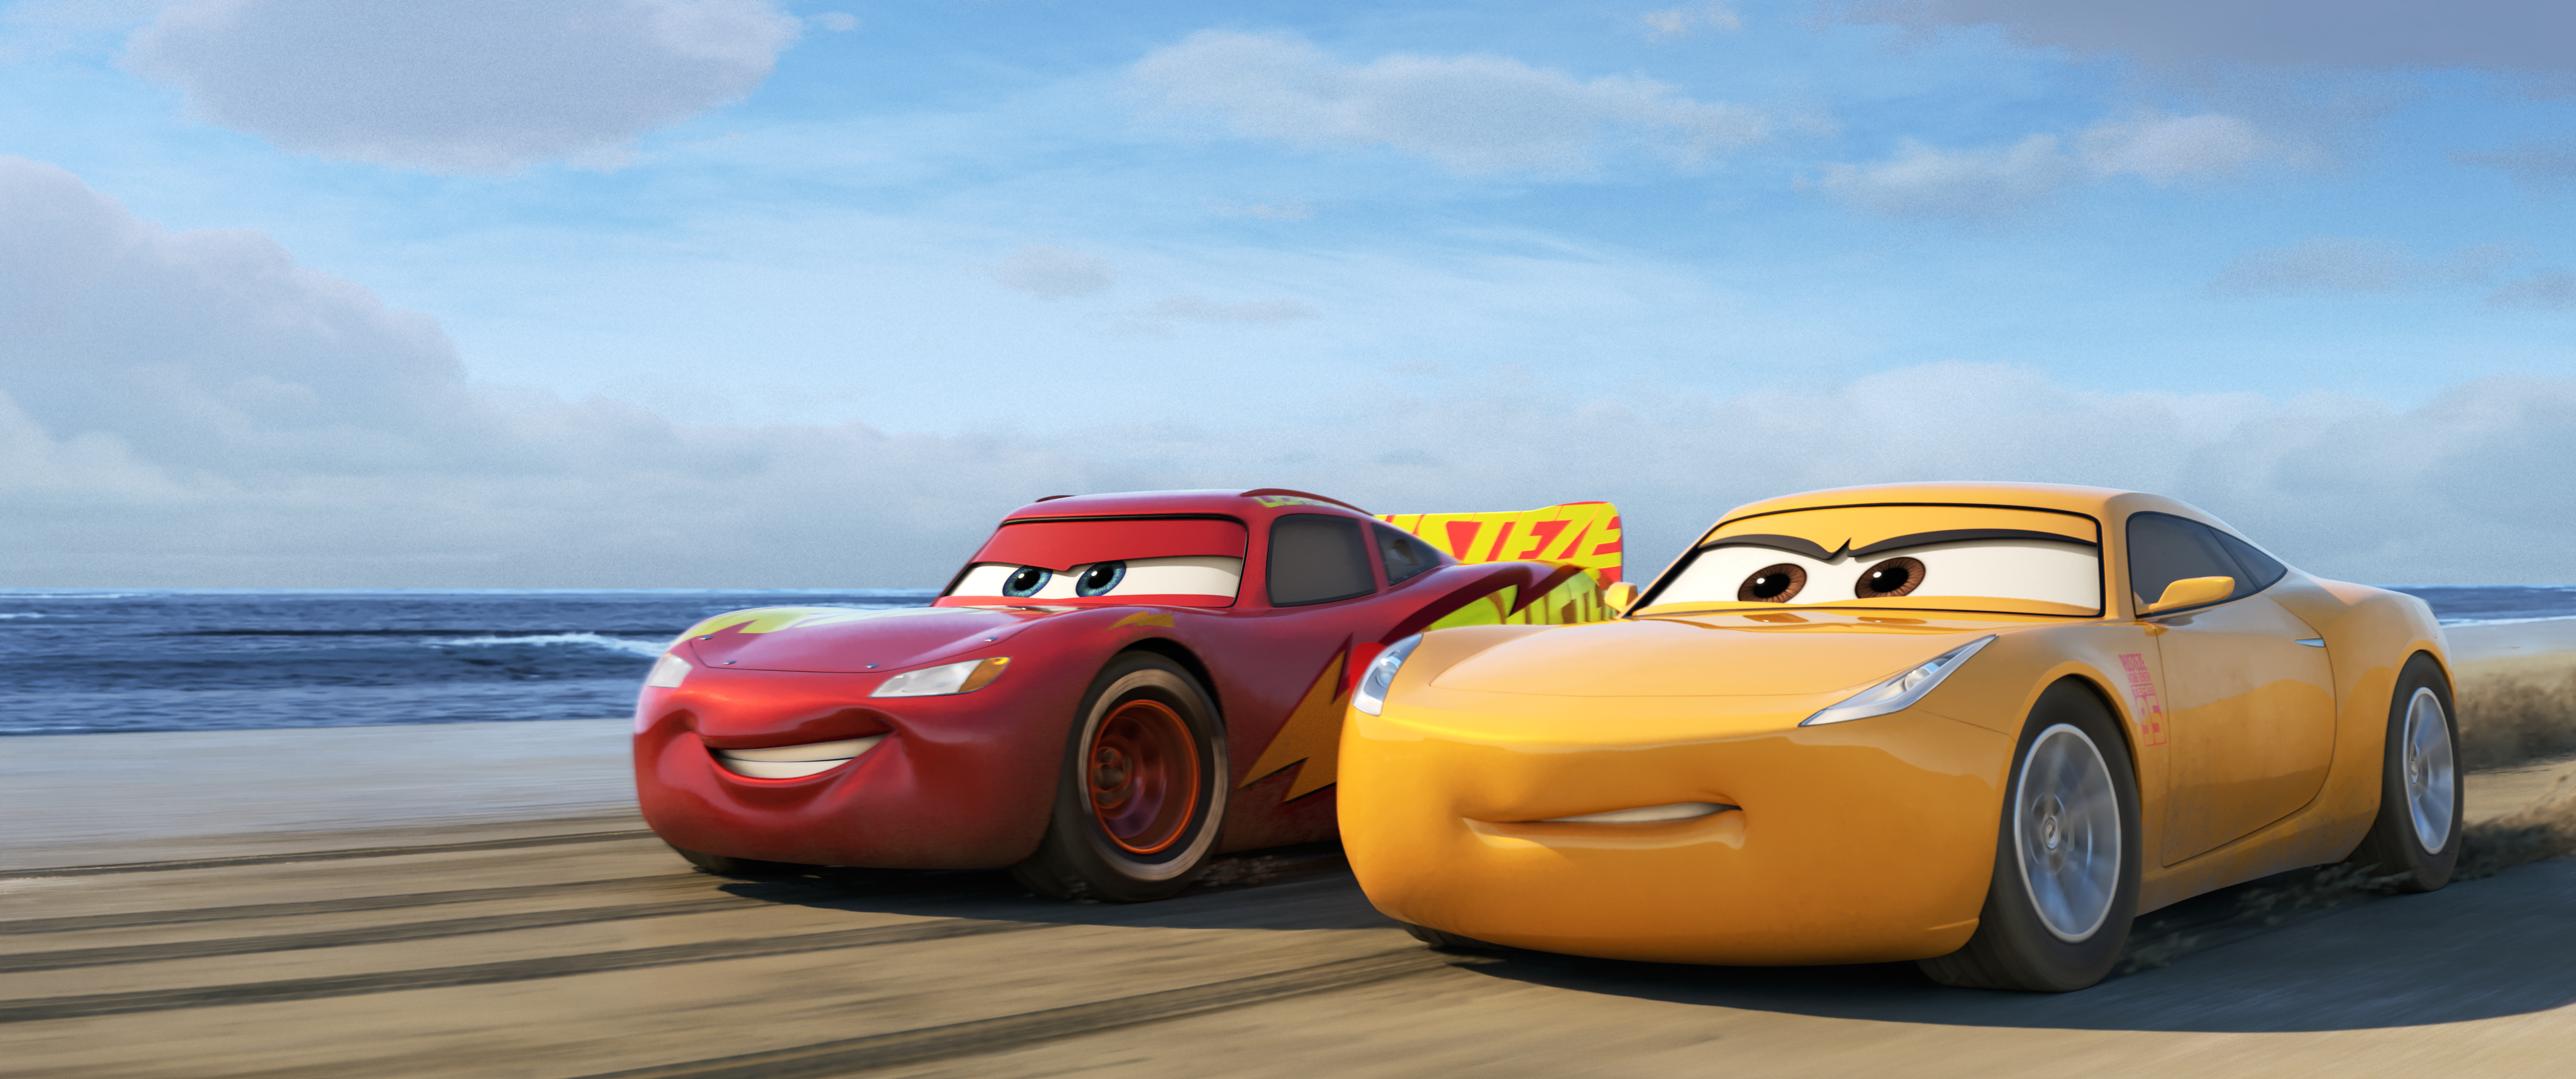 I'm heading to the Disney Pixar Cars 3 and More!